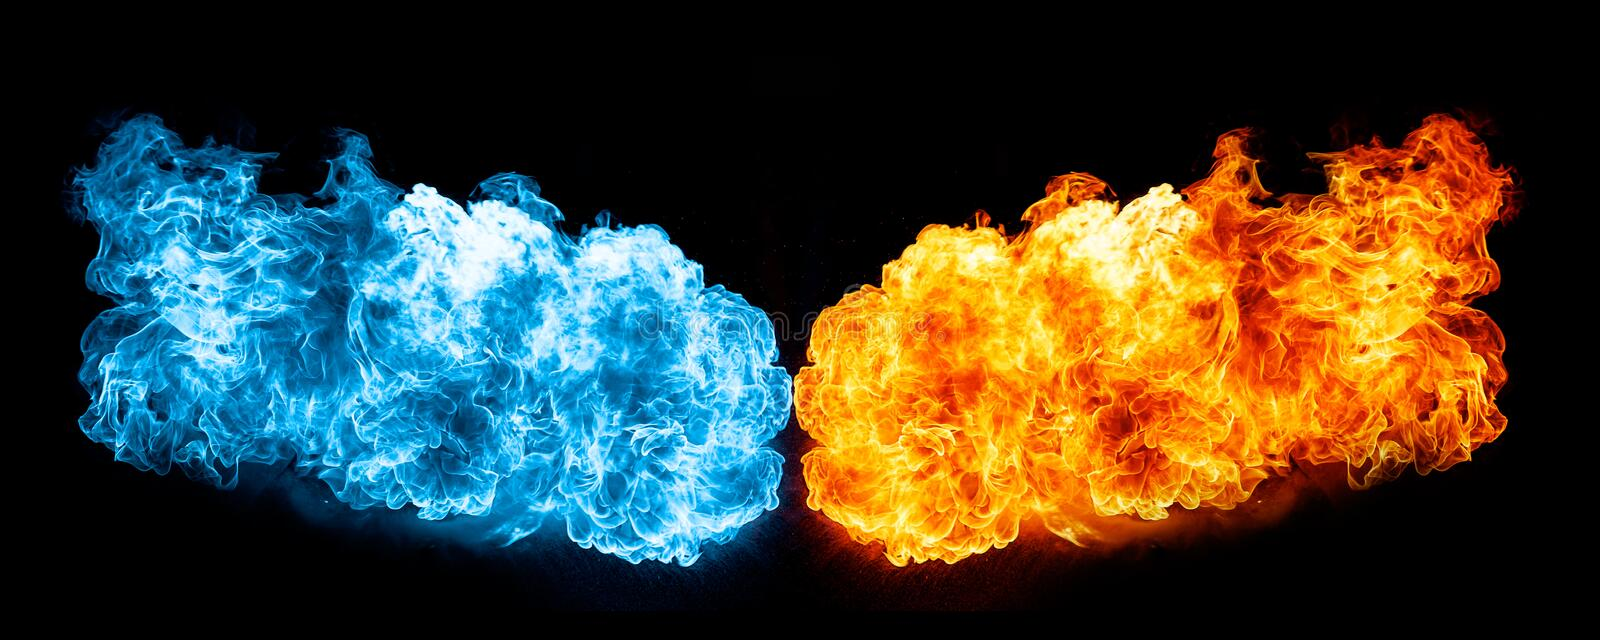 Red and blue fire on balck background. Red and blue fire on balck royalty free stock image